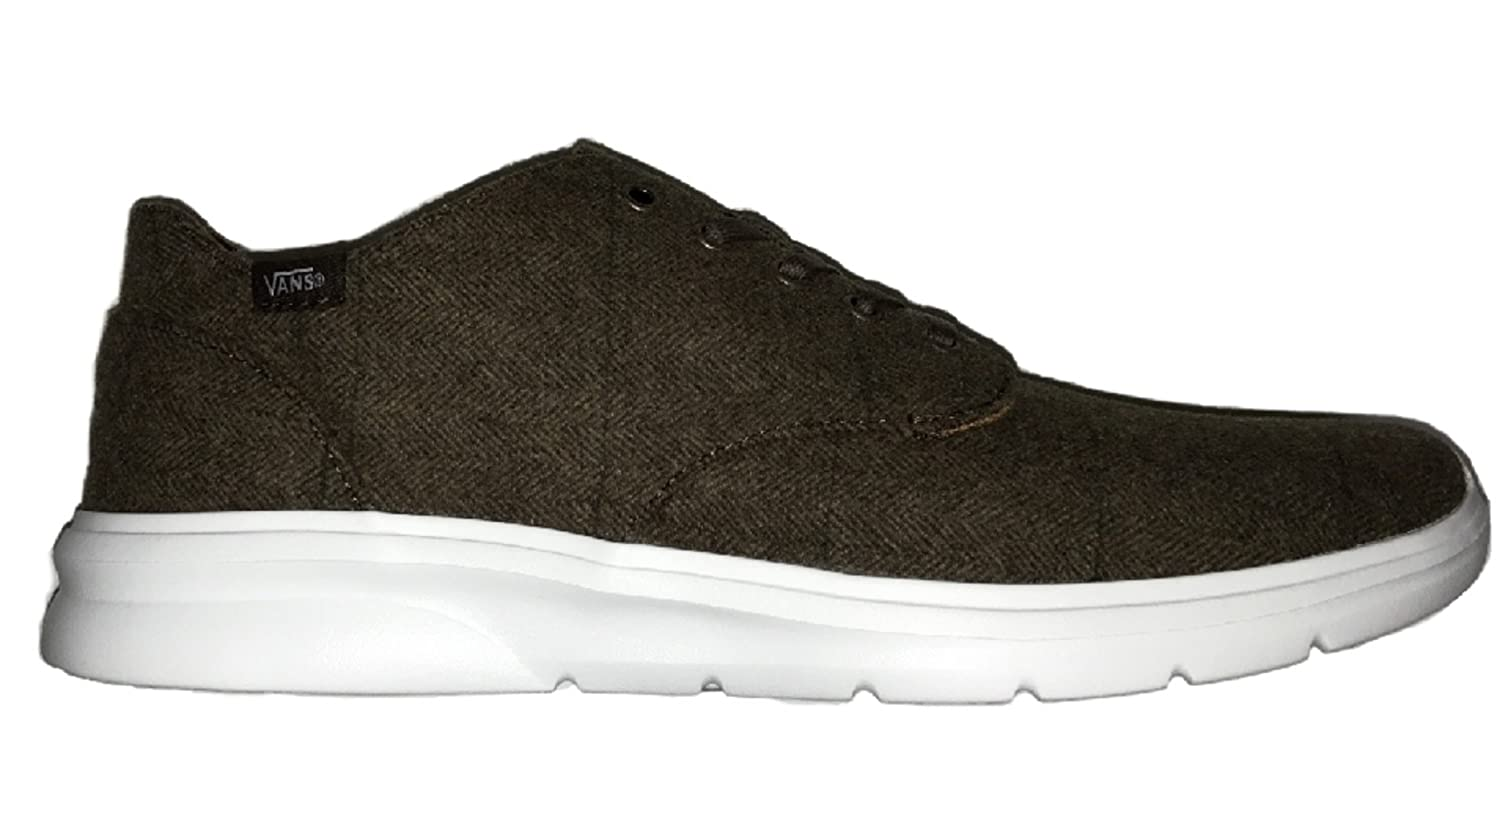 Vans Men's Iso 2 Tweed Casual Shoes 10 B(M) US Women / 8.5 D(M) US Men|Potting Soil/White